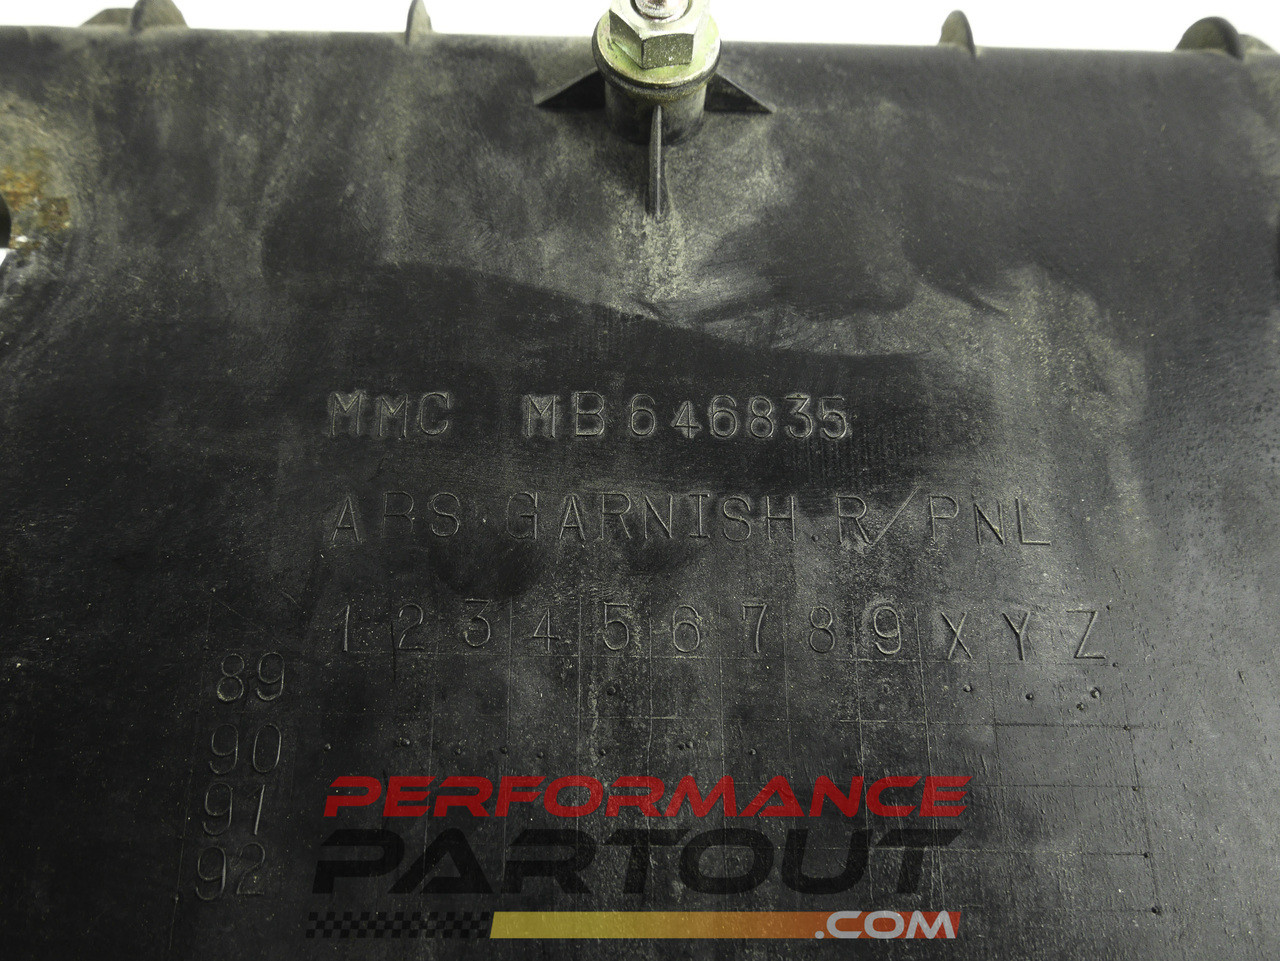 Taillight backing plate 91 GVR4